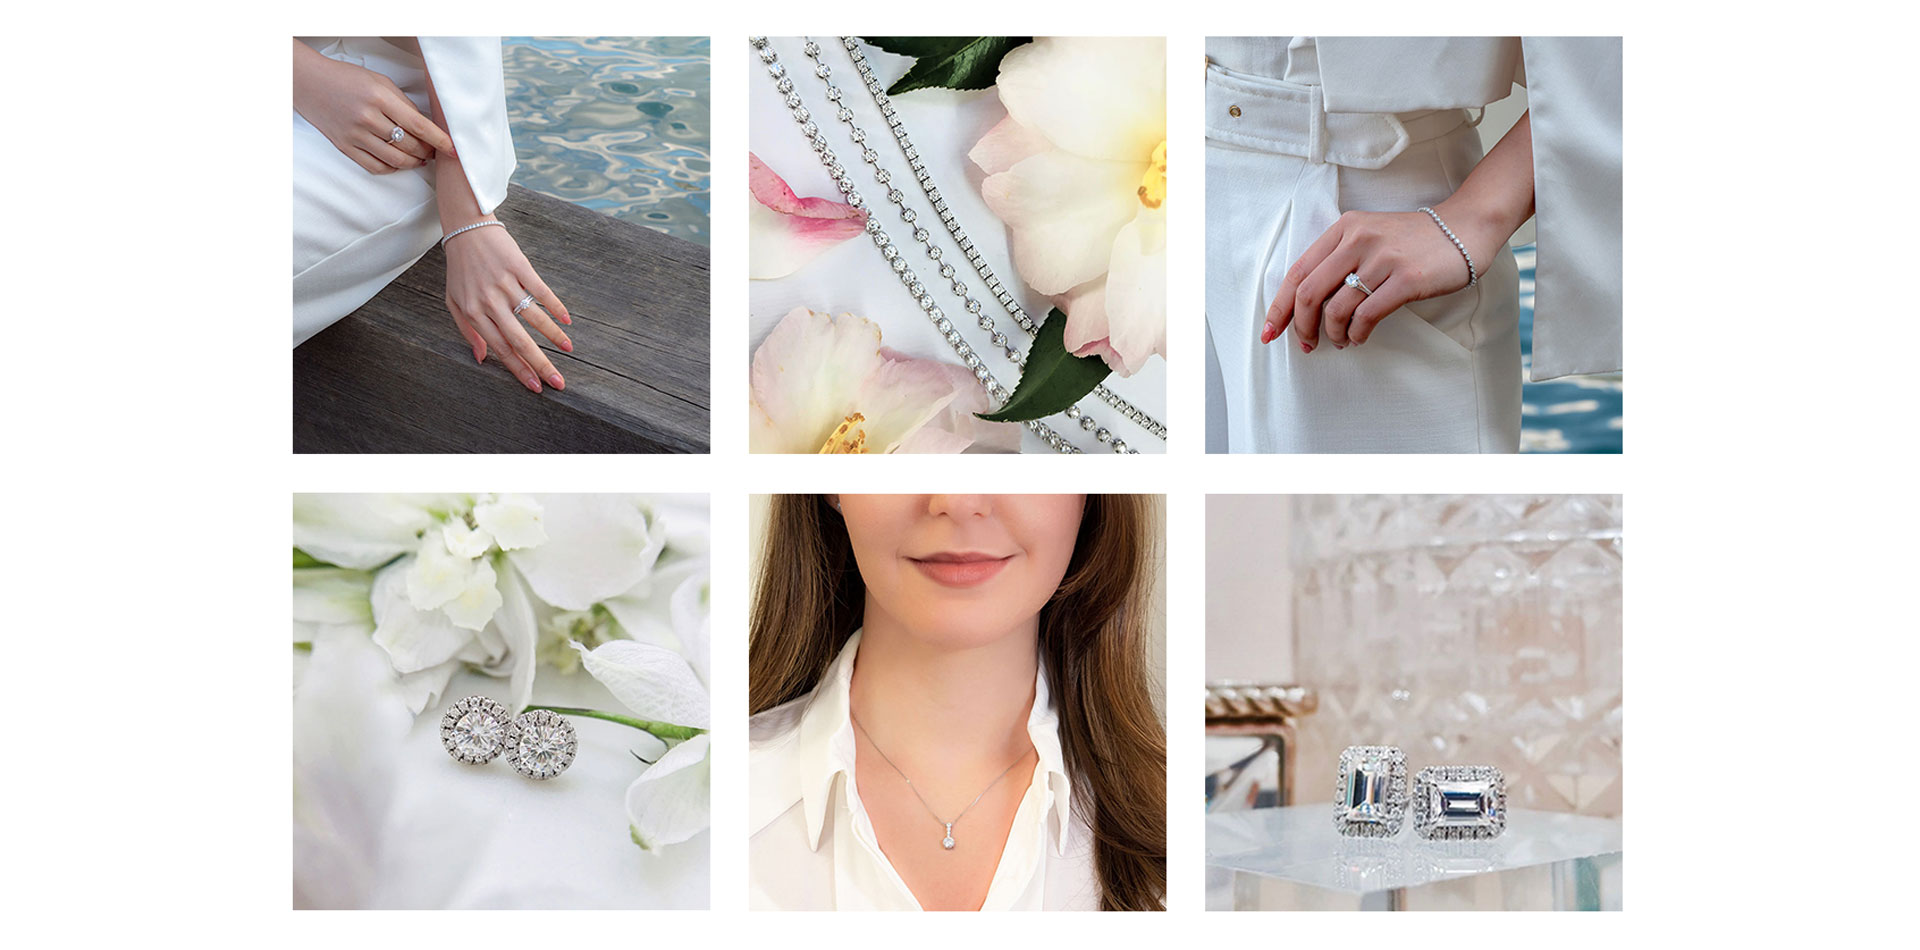 Follow us on Instagram @moimoifinejewellery